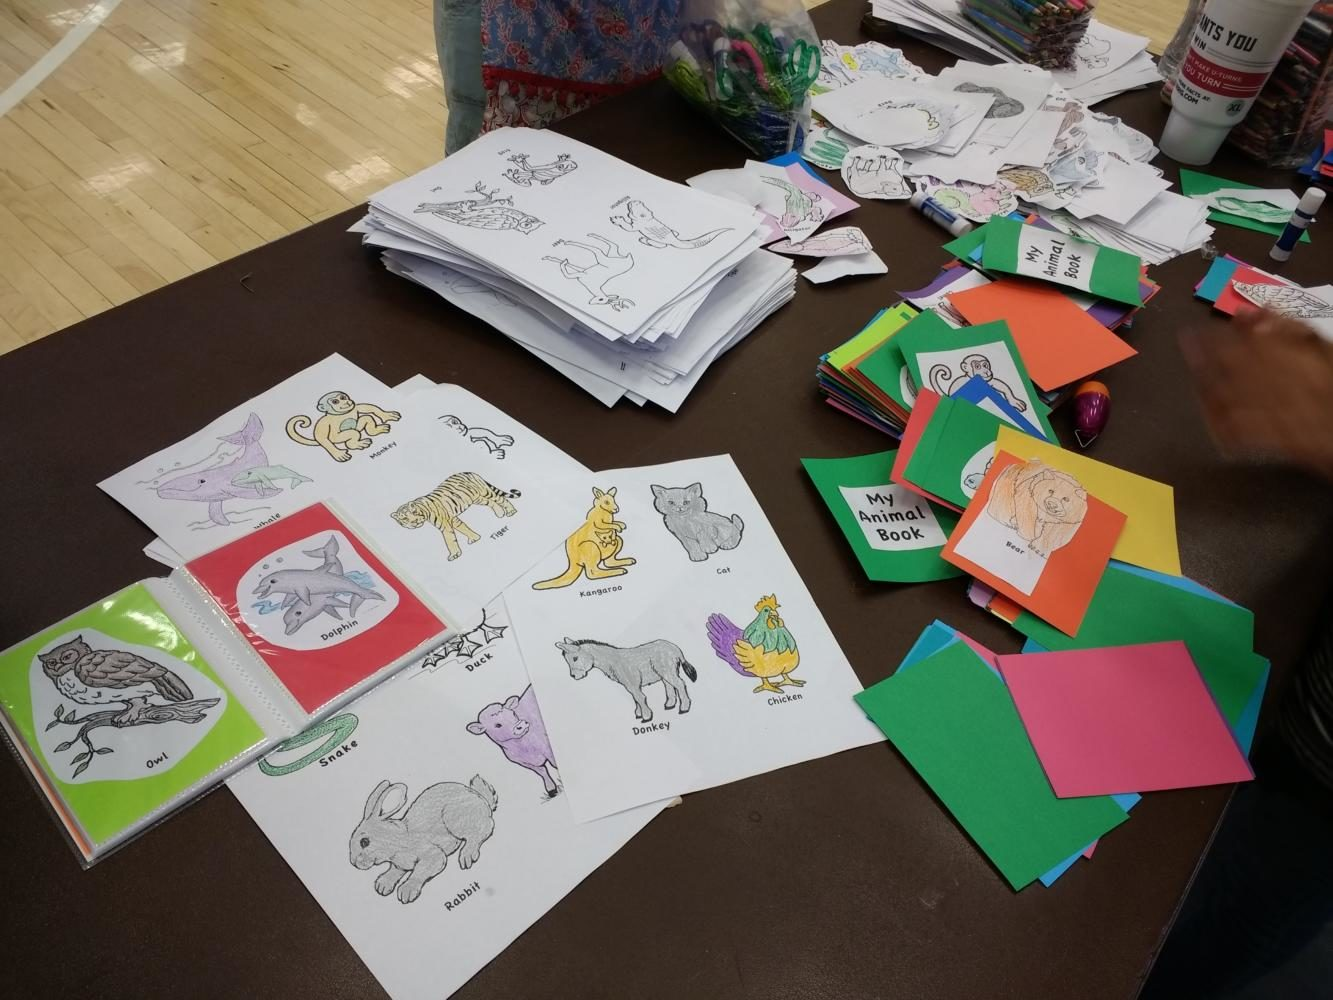 Books+of+animals+colored+by+highland+students+made+to+help+refugee+children+learn+english.